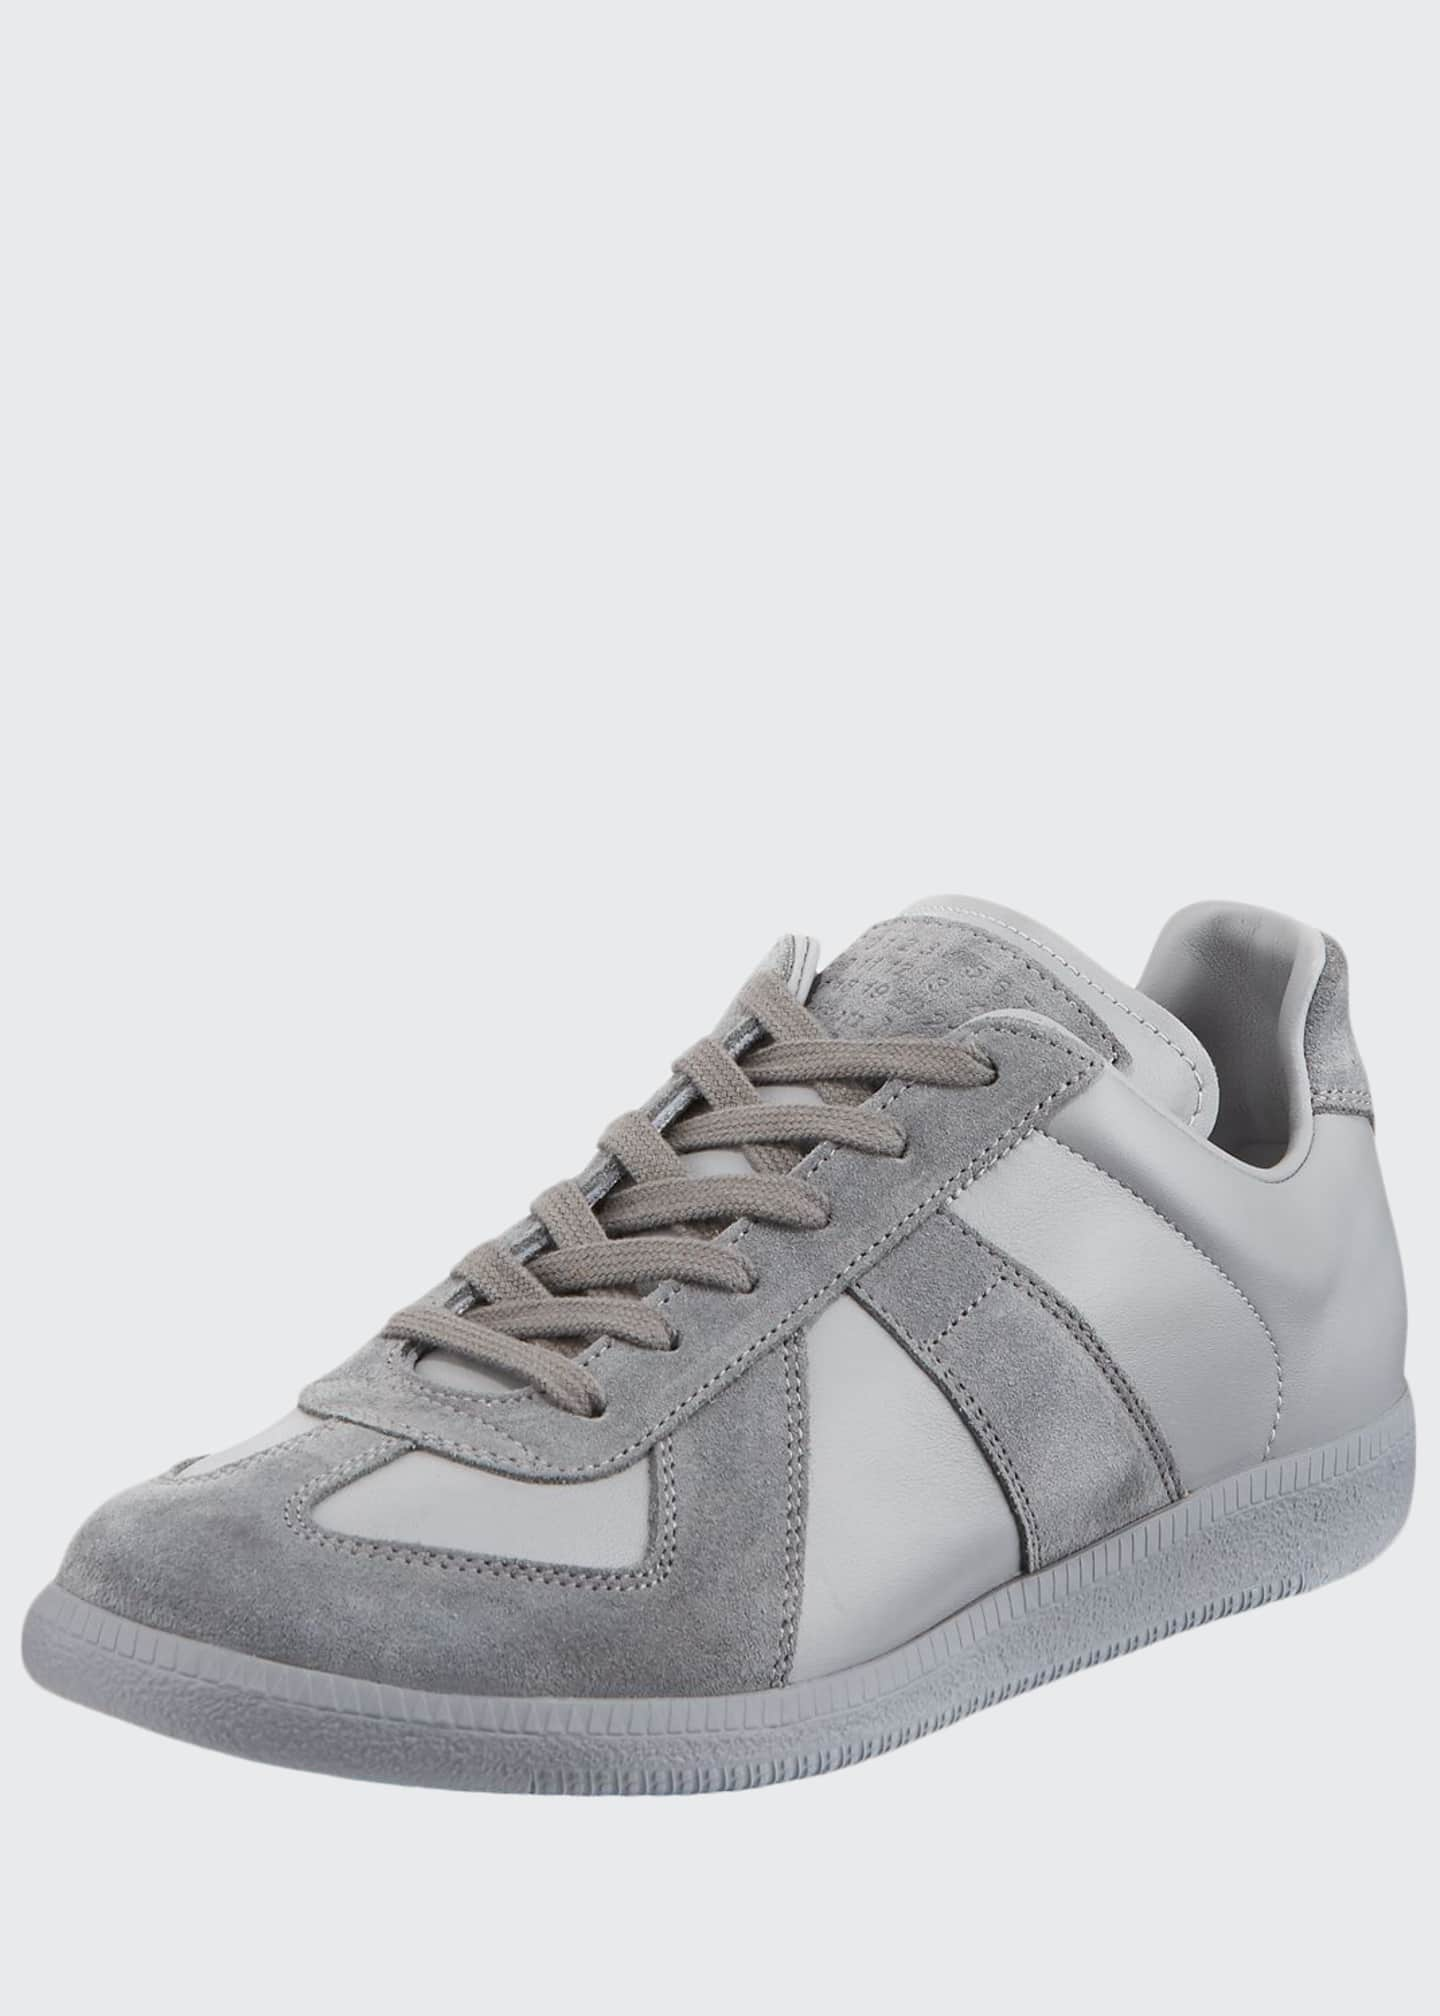 Image 1 of 3: Men's Replica Low-Top Leather Sneakers